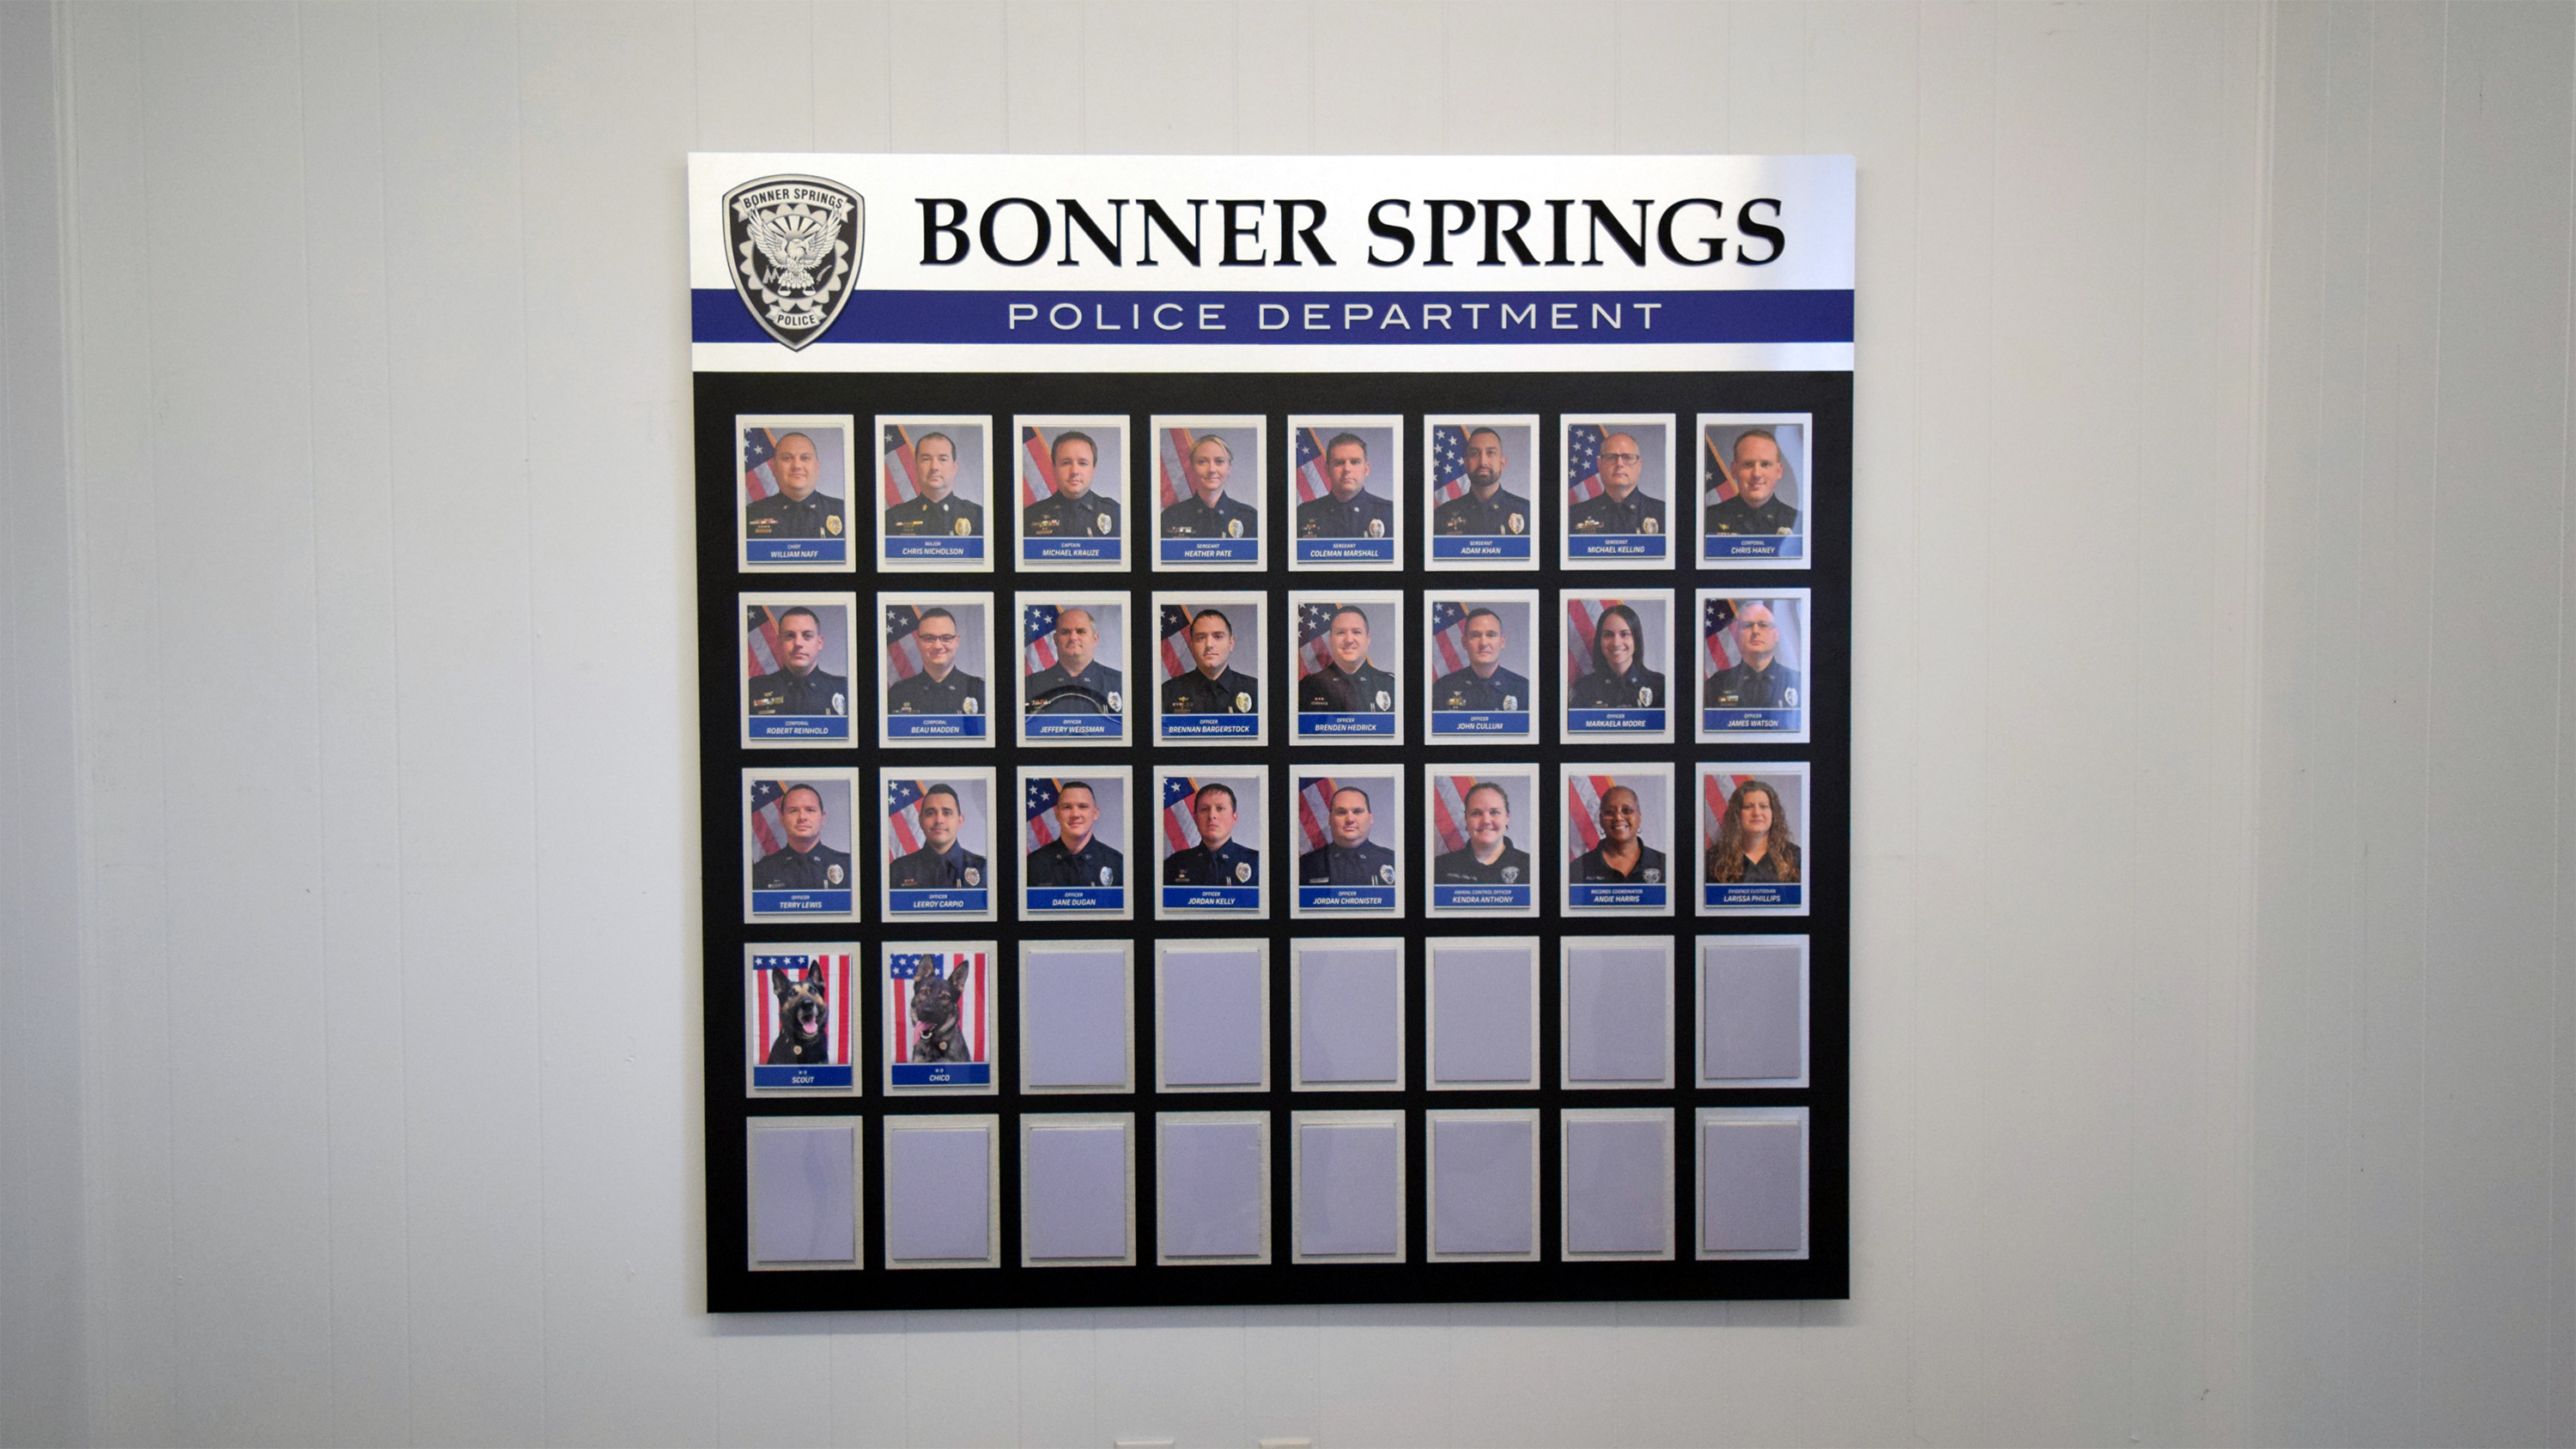 Employee recognition wall for Bonner Springs Police Department